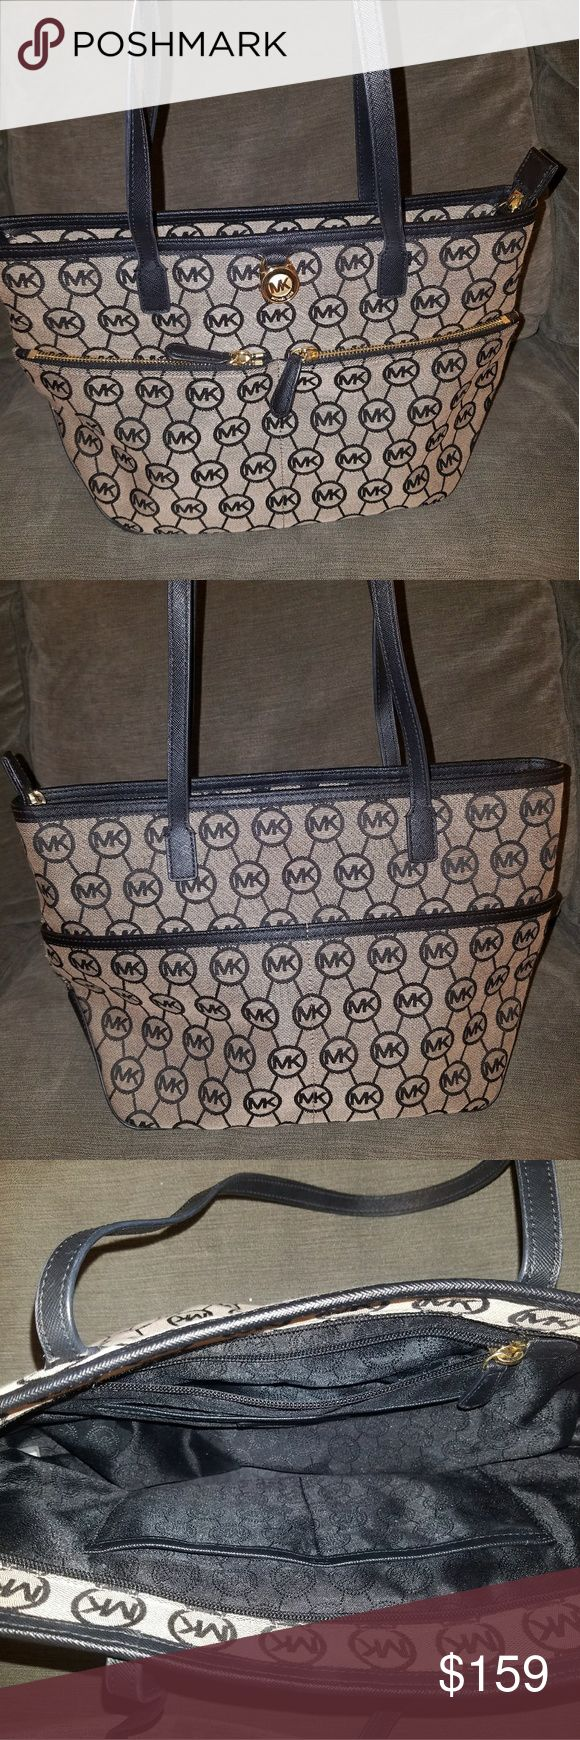 Michael Kors Black and Tan Tote Bag Authentic Michael Kors Black and Tan Tote Bag. Lightly used. Not noticeable Michael Kors Bags Totes